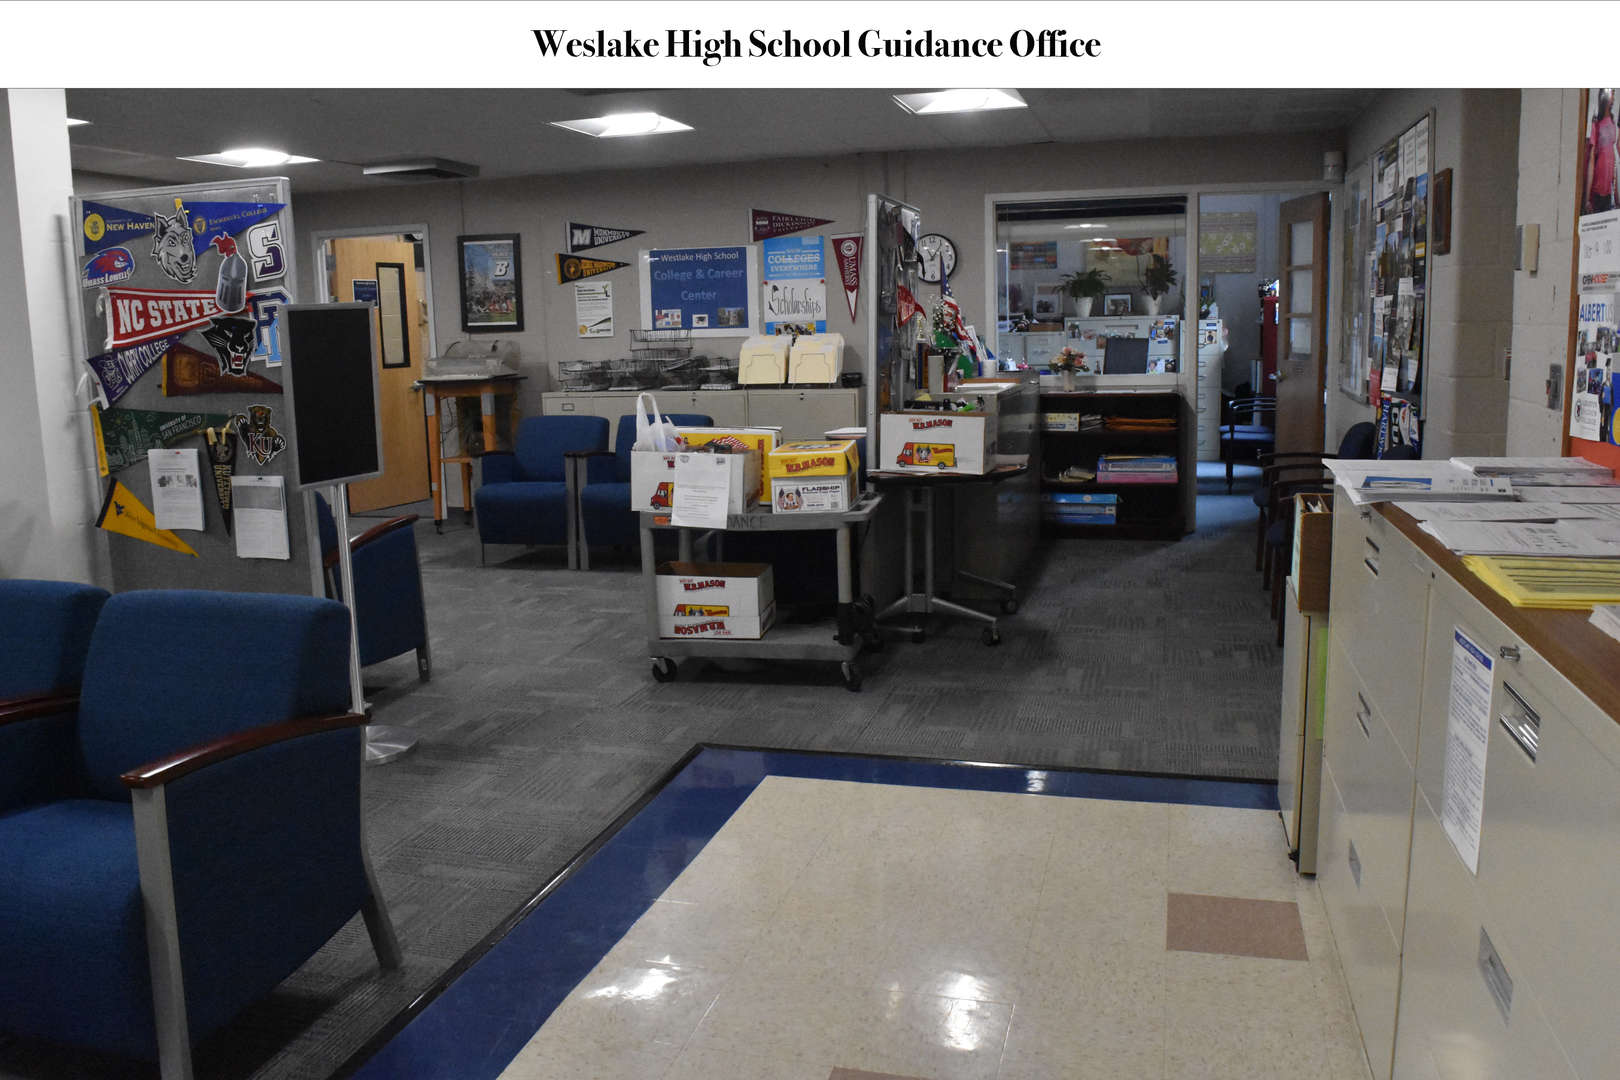 WHS Guidance office reception area